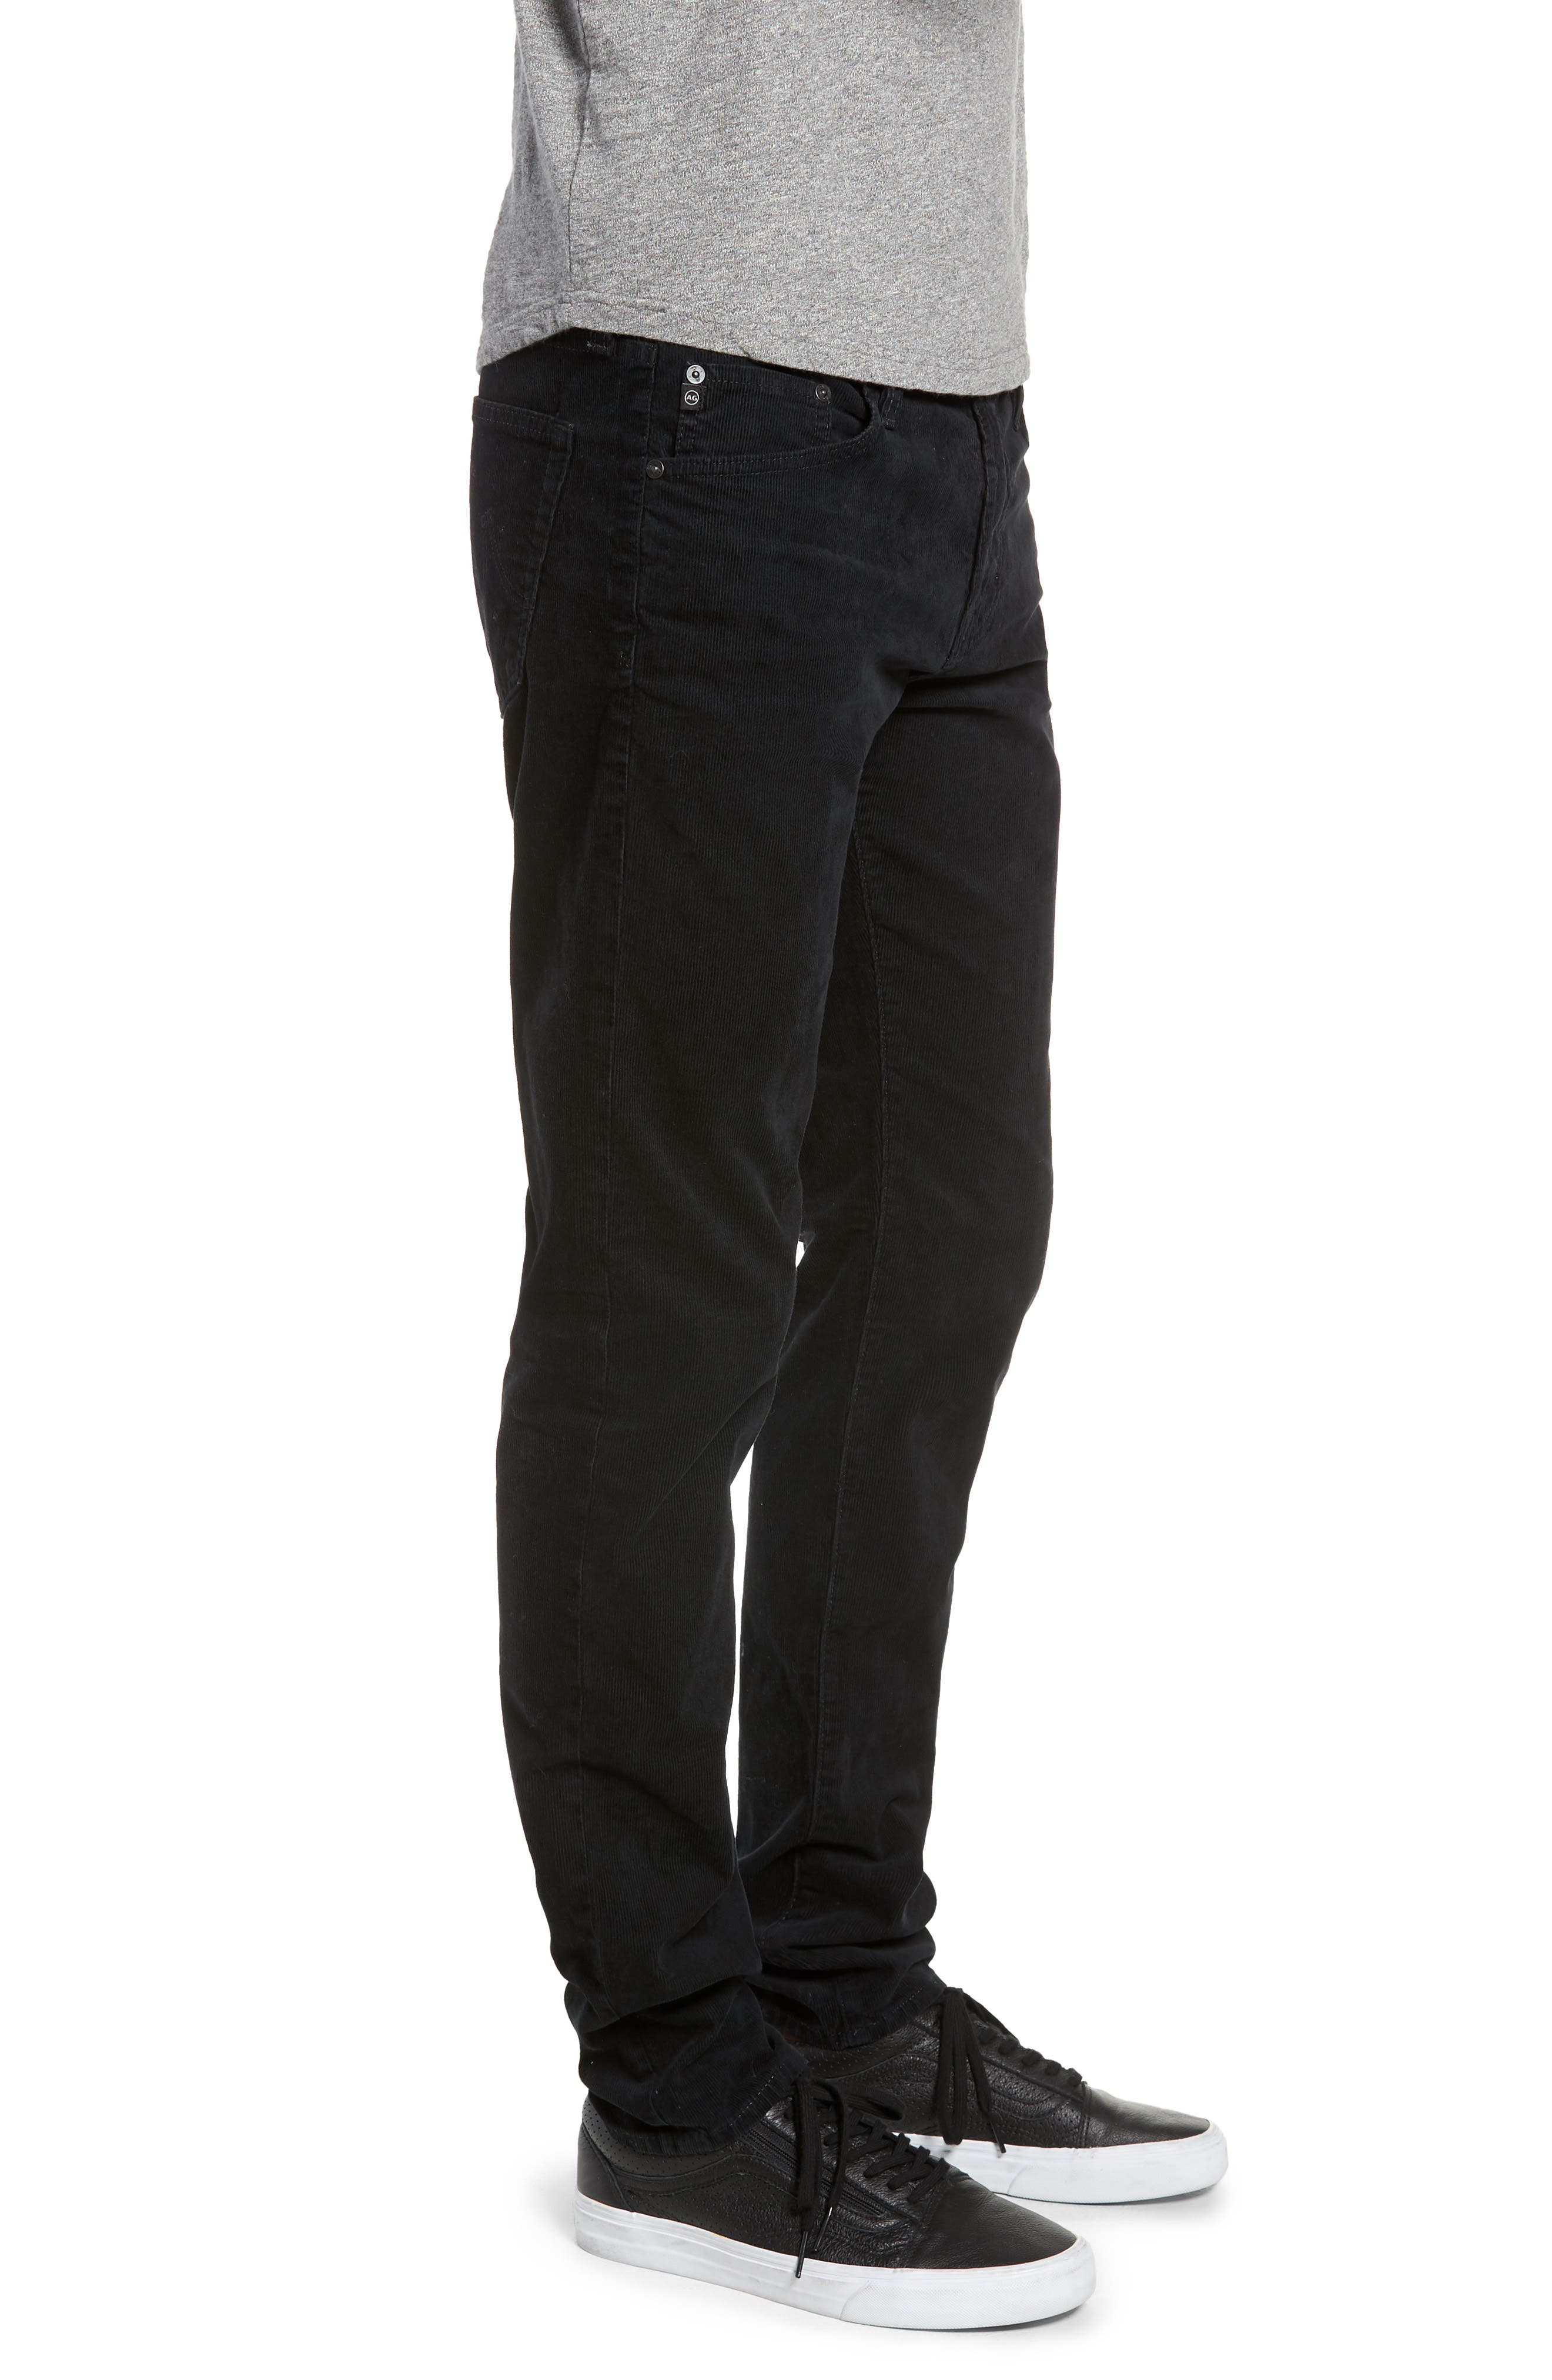 Dylan Skinny Fit Corduroy Pants,                             Alternate thumbnail 3, color,                             SULFUR ASH BLACK